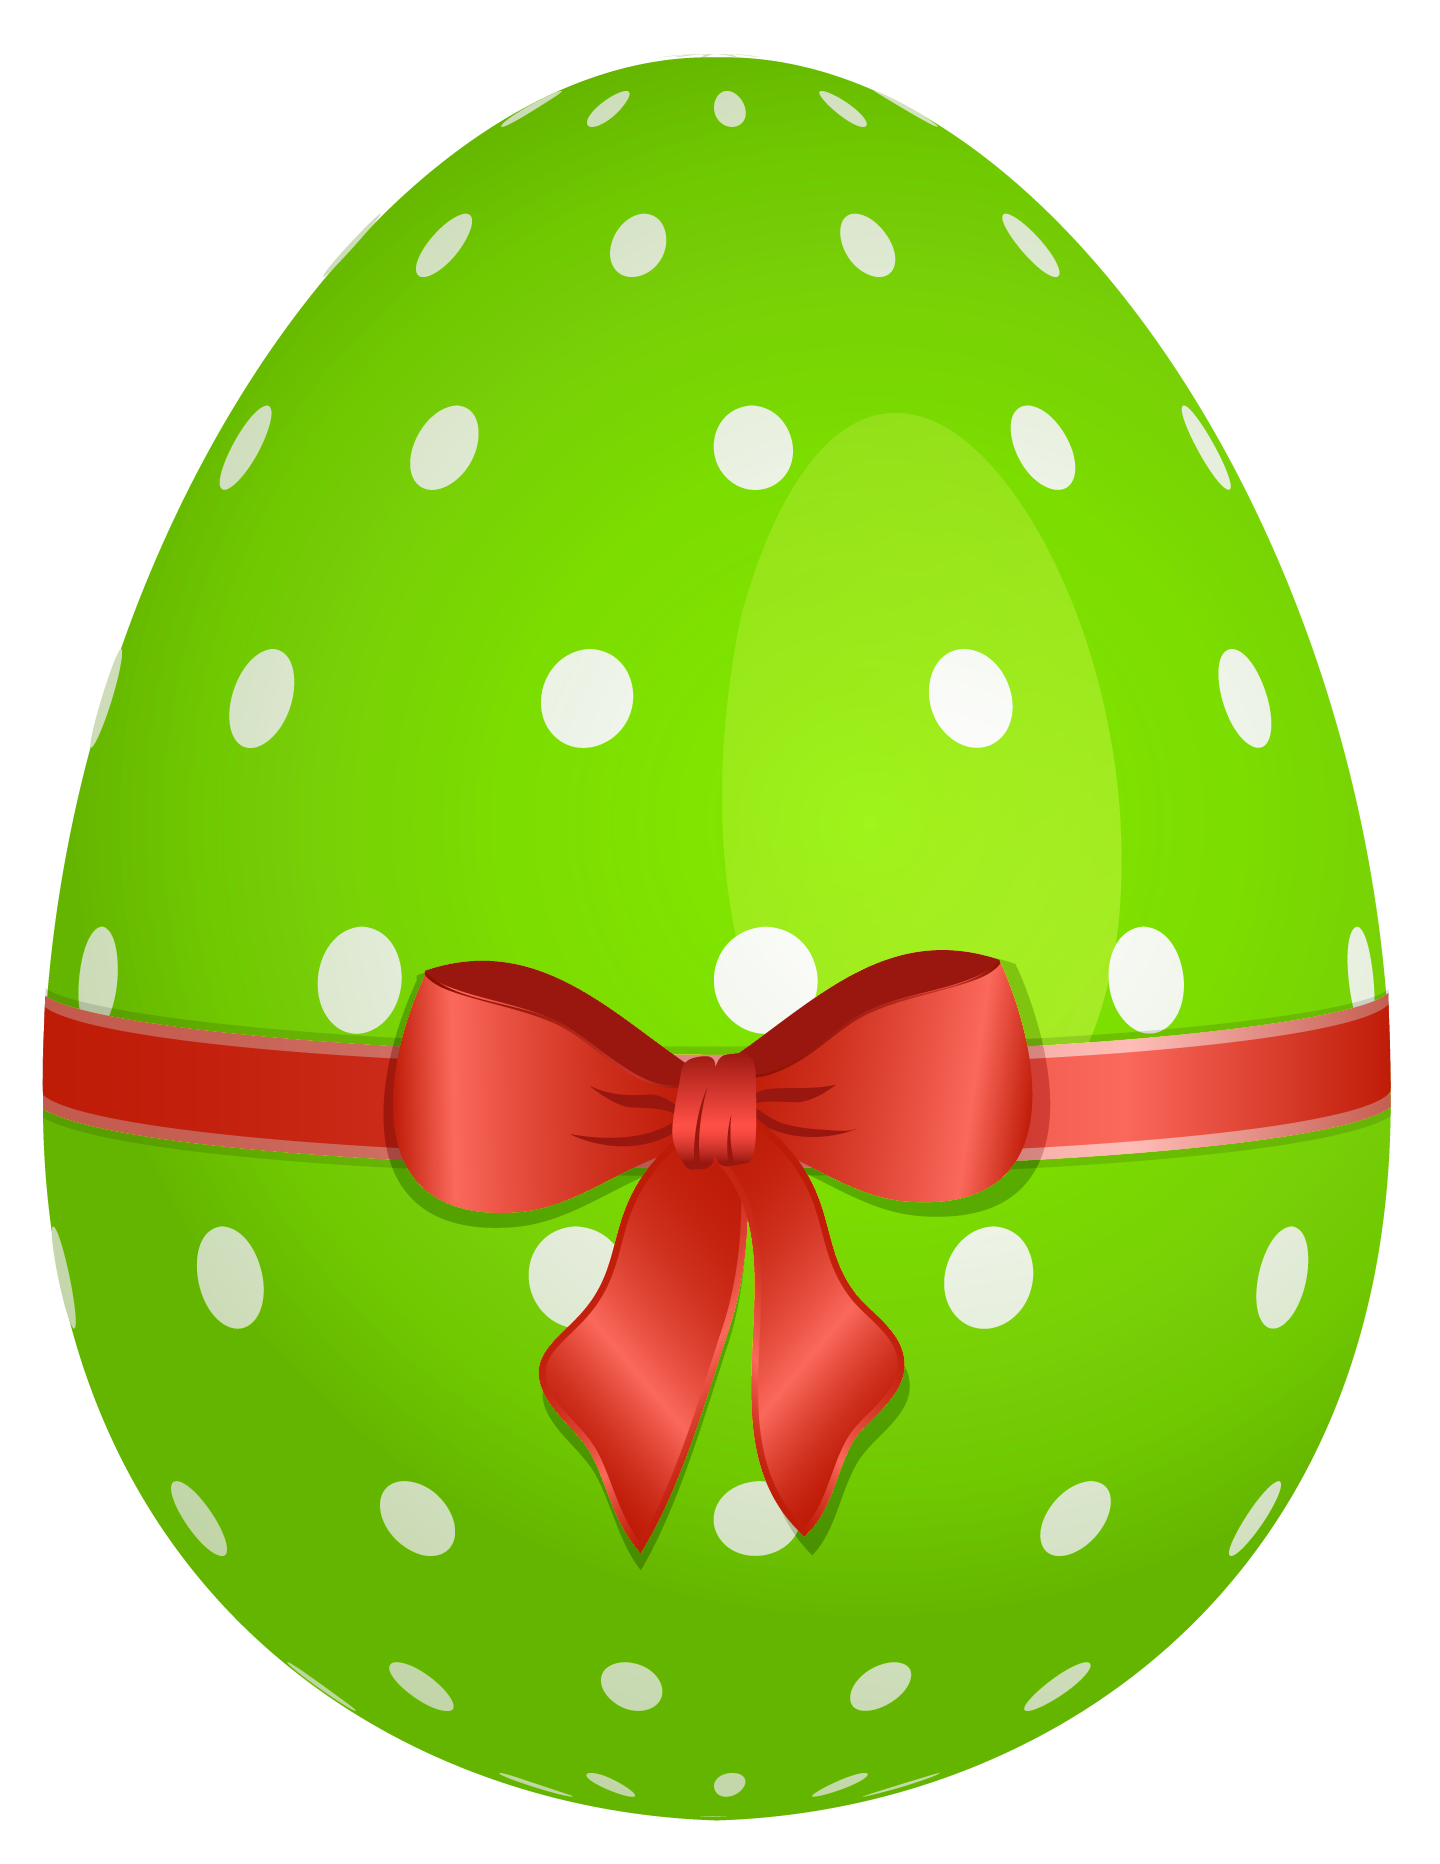 Easter egg no incep. Circle clipart clear background